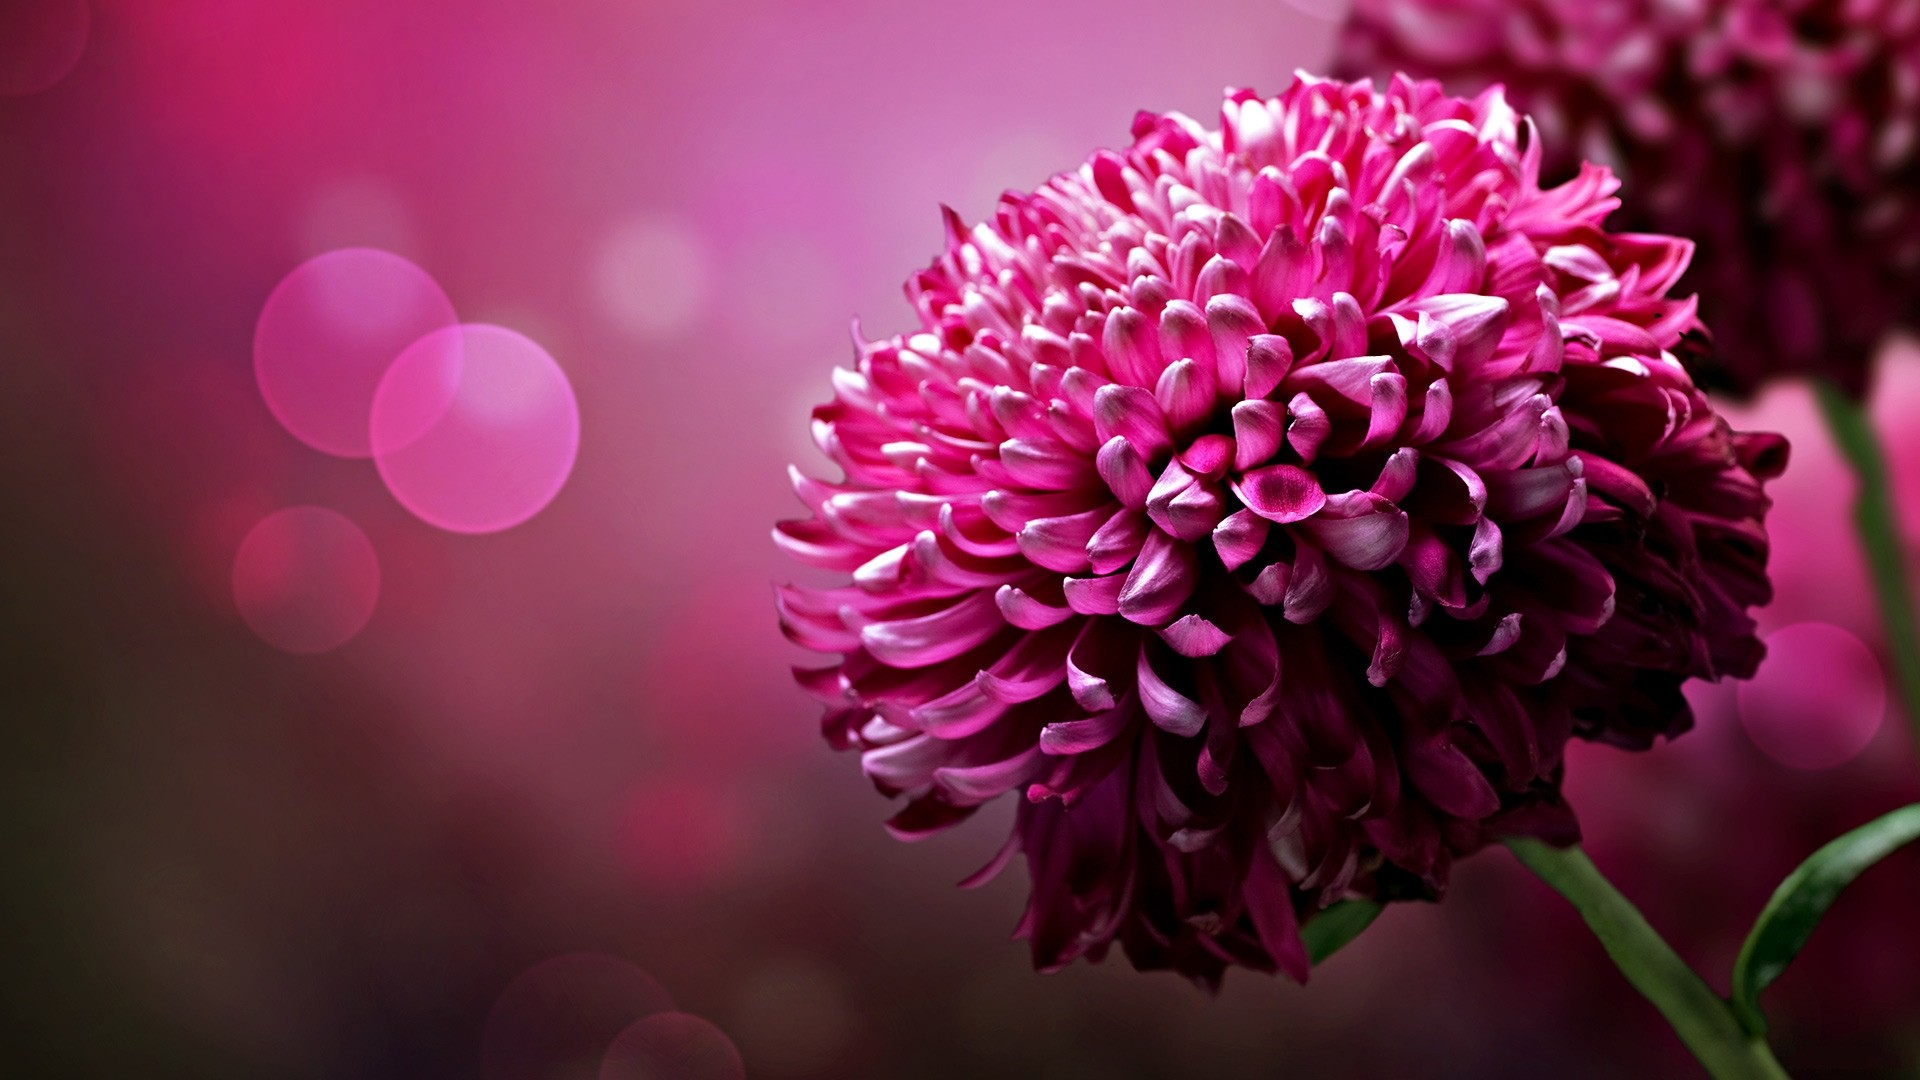 flower-wallpaper-rar-nature-picture-flower-wallpaper